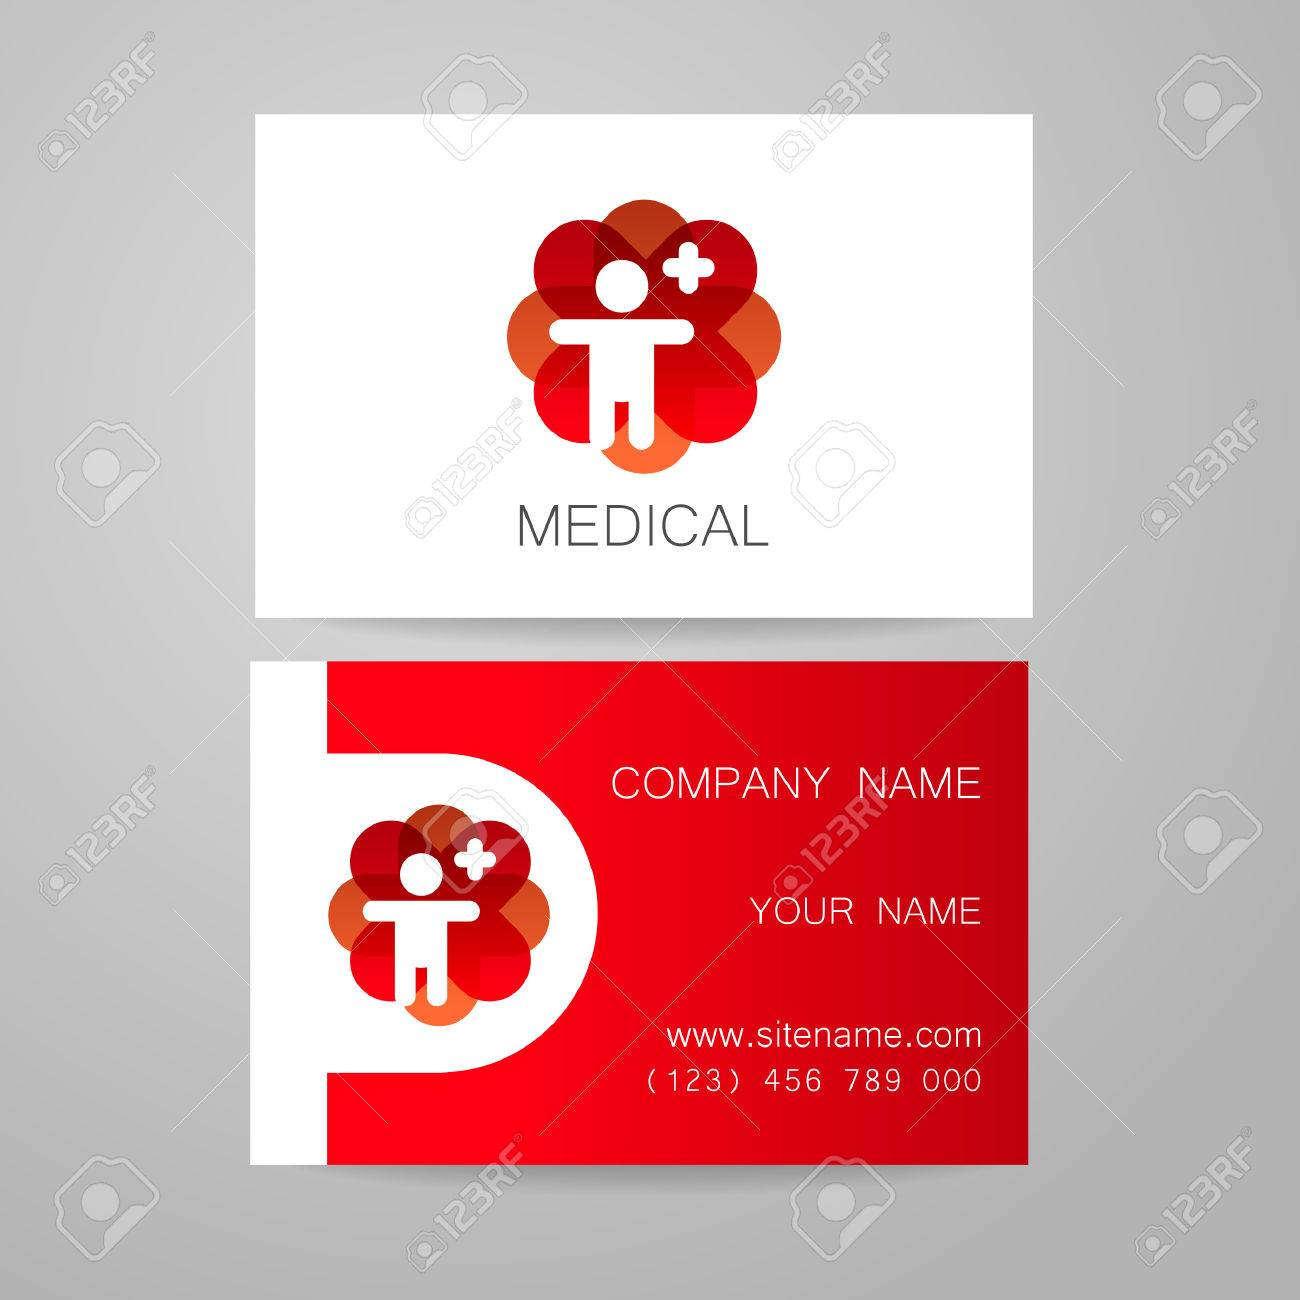 Template of medical business cards royalty free cliparts vectors template of medical business cards stock vector 44650010 reheart Image collections